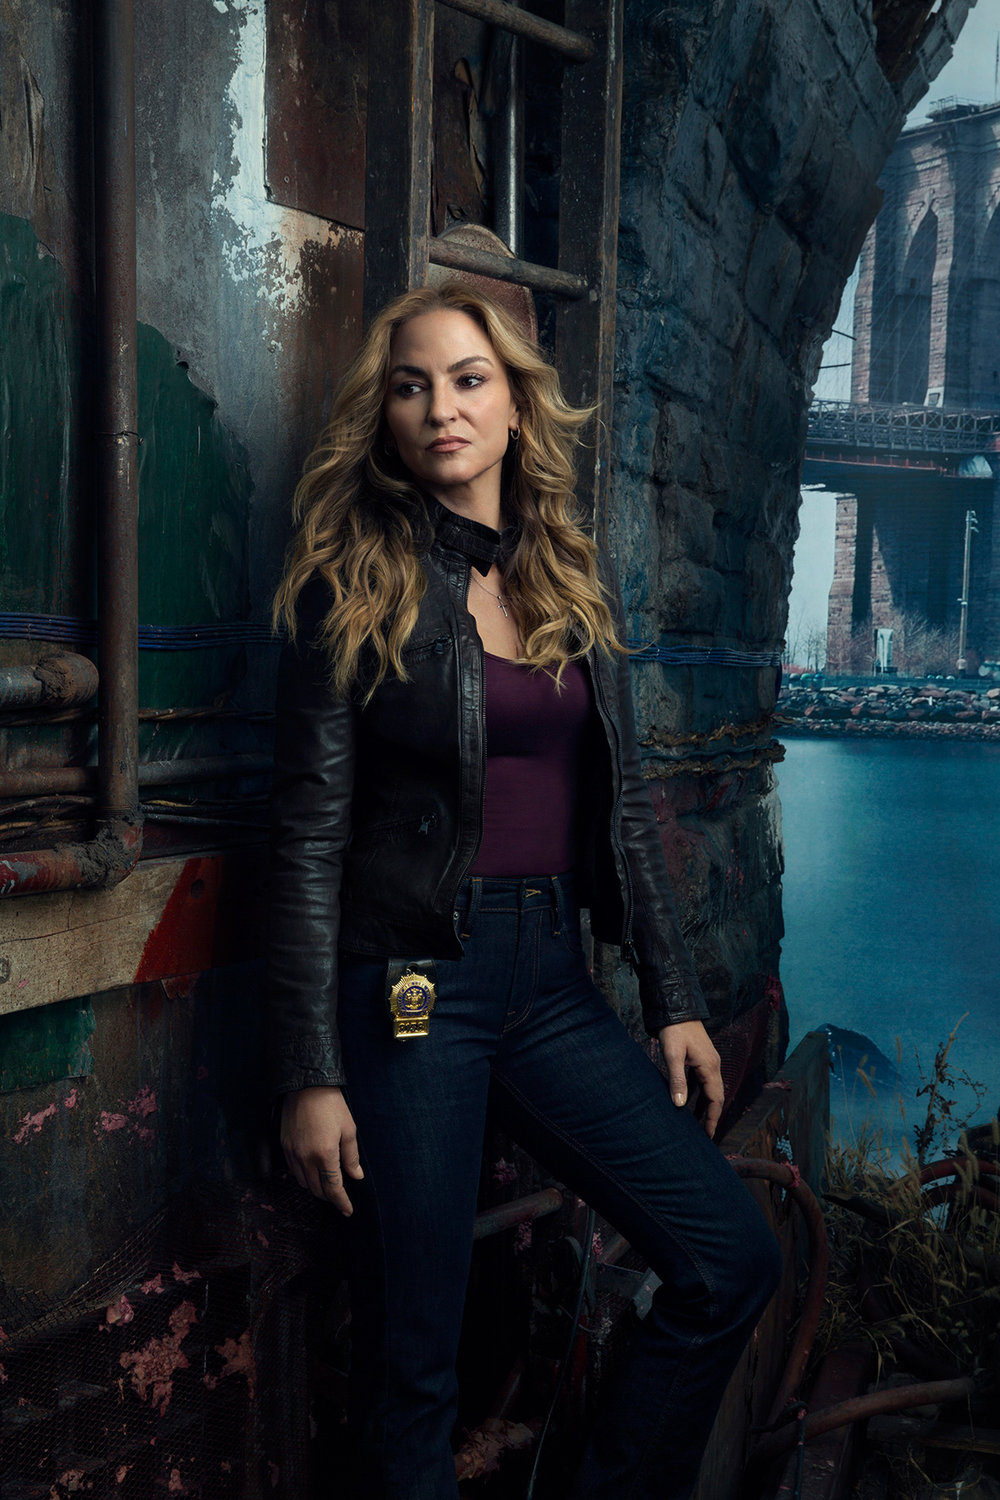 NBC - Drea de Matteo - Shades Of Blue - New York City